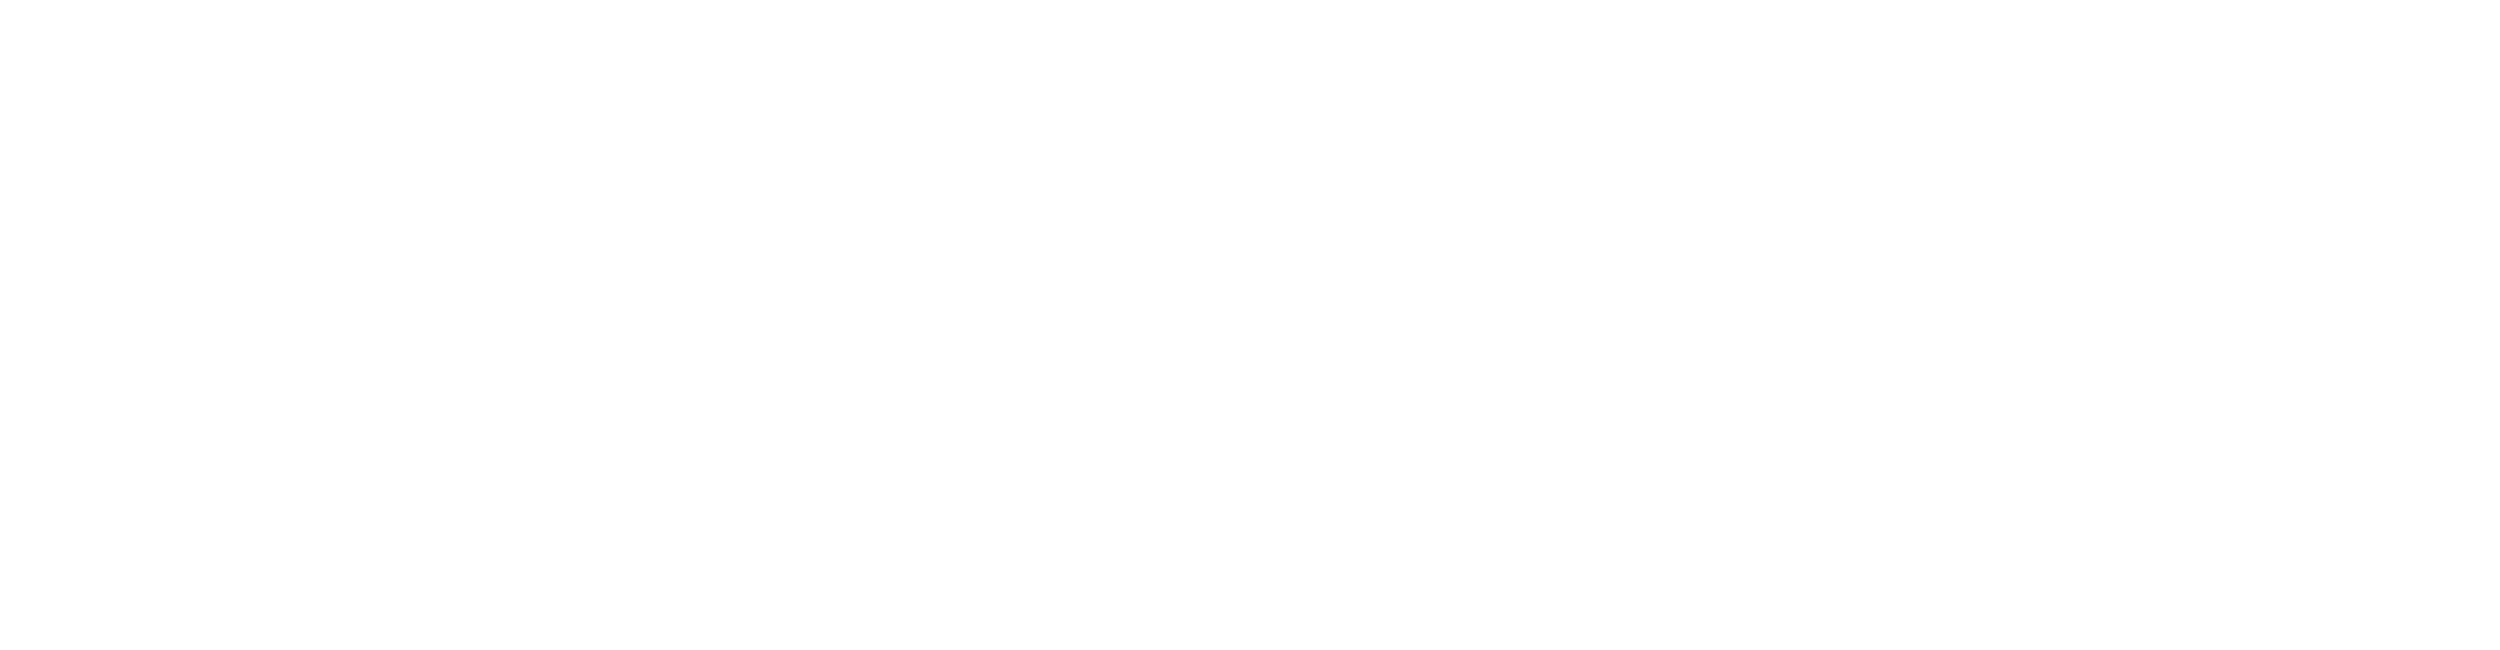 'ODI notes the remarkable degree of co-operation between the Taliban and the Government … Bad governance is the root cause of conflict and functioning institutions are the key to stability.' –Baroness D'Souza, former Lord Speaker, House of Lords